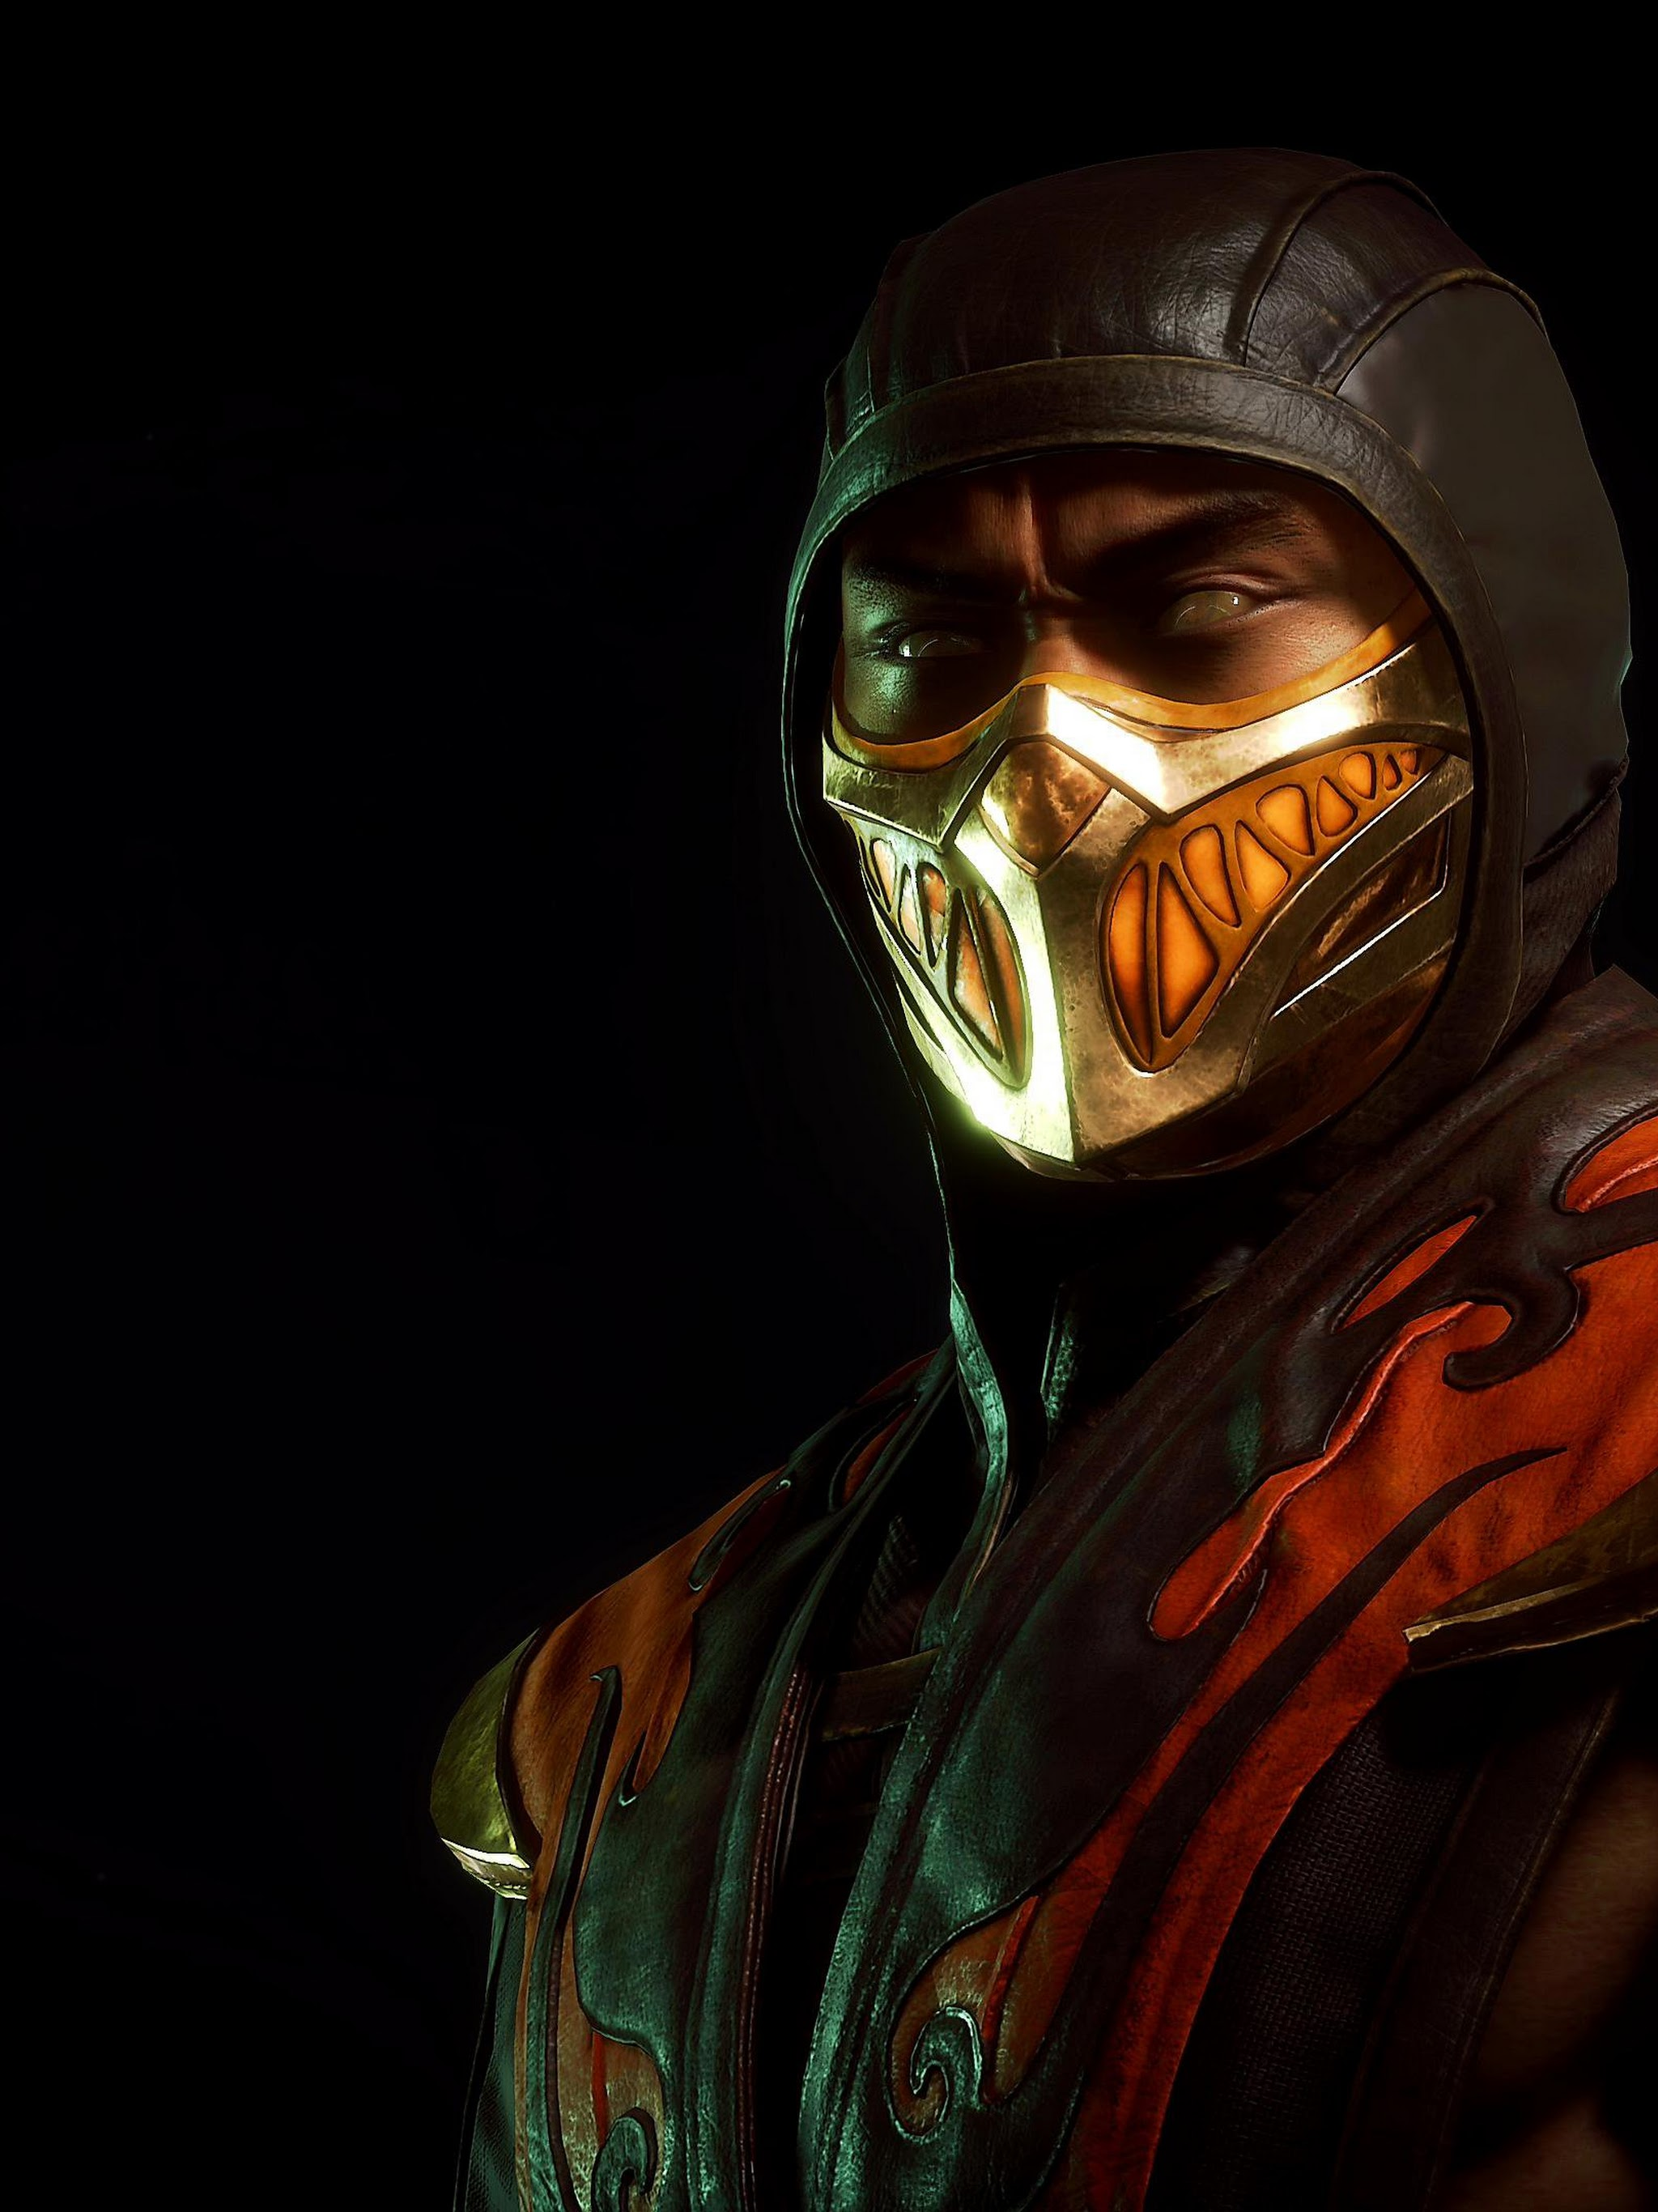 Scorpion Mortal Kombat 11 4k Wallpaper 337